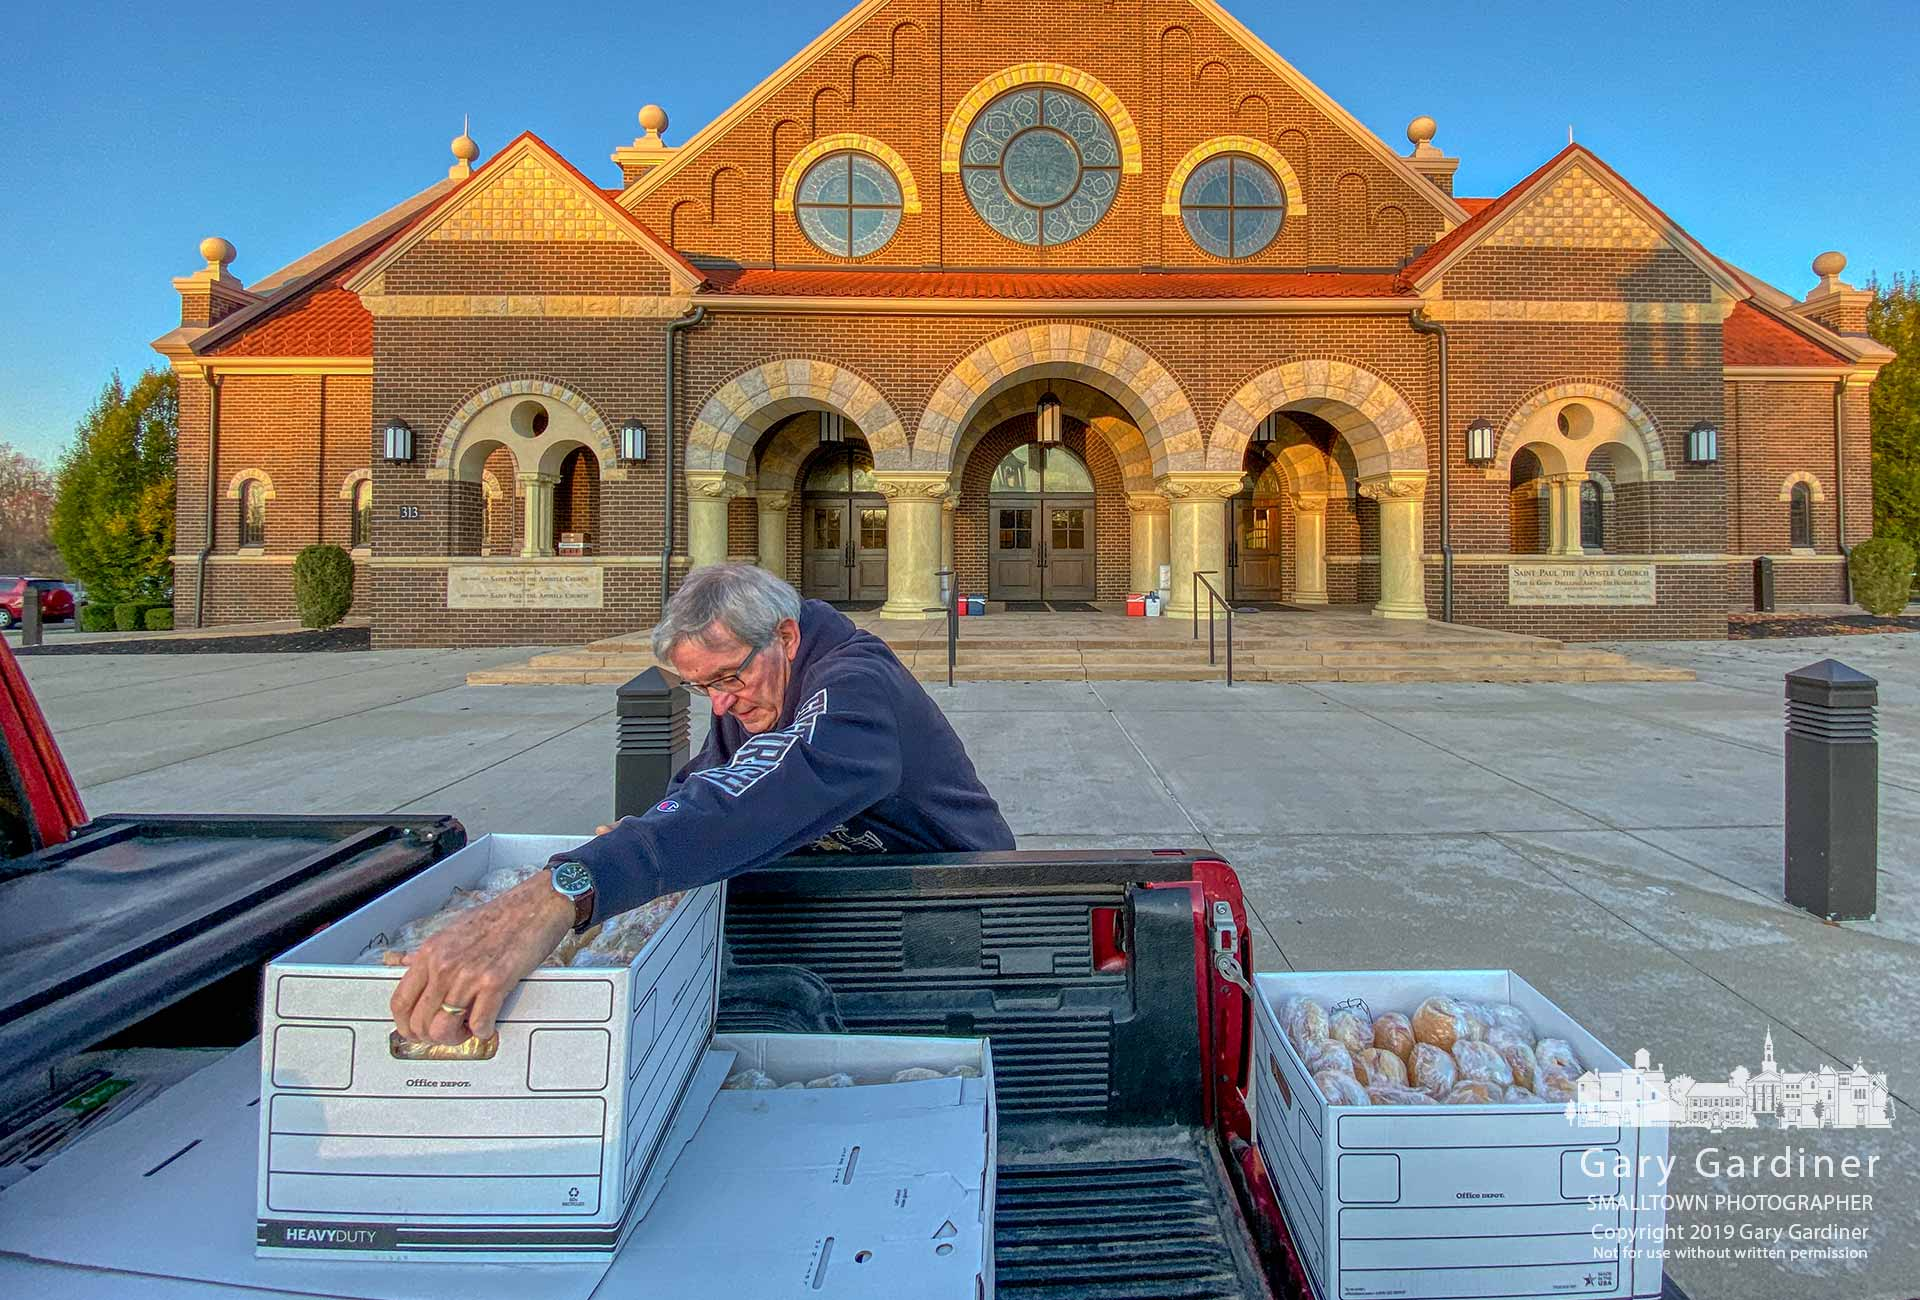 A member of the Knights of Columbus unloads boxes of sub sandwiches to be sold as a fundraiser after Sunday Masses at St. Paul the Apostle Catholic Church in Westerville. My Final Photo for Nov. 3, 2019.